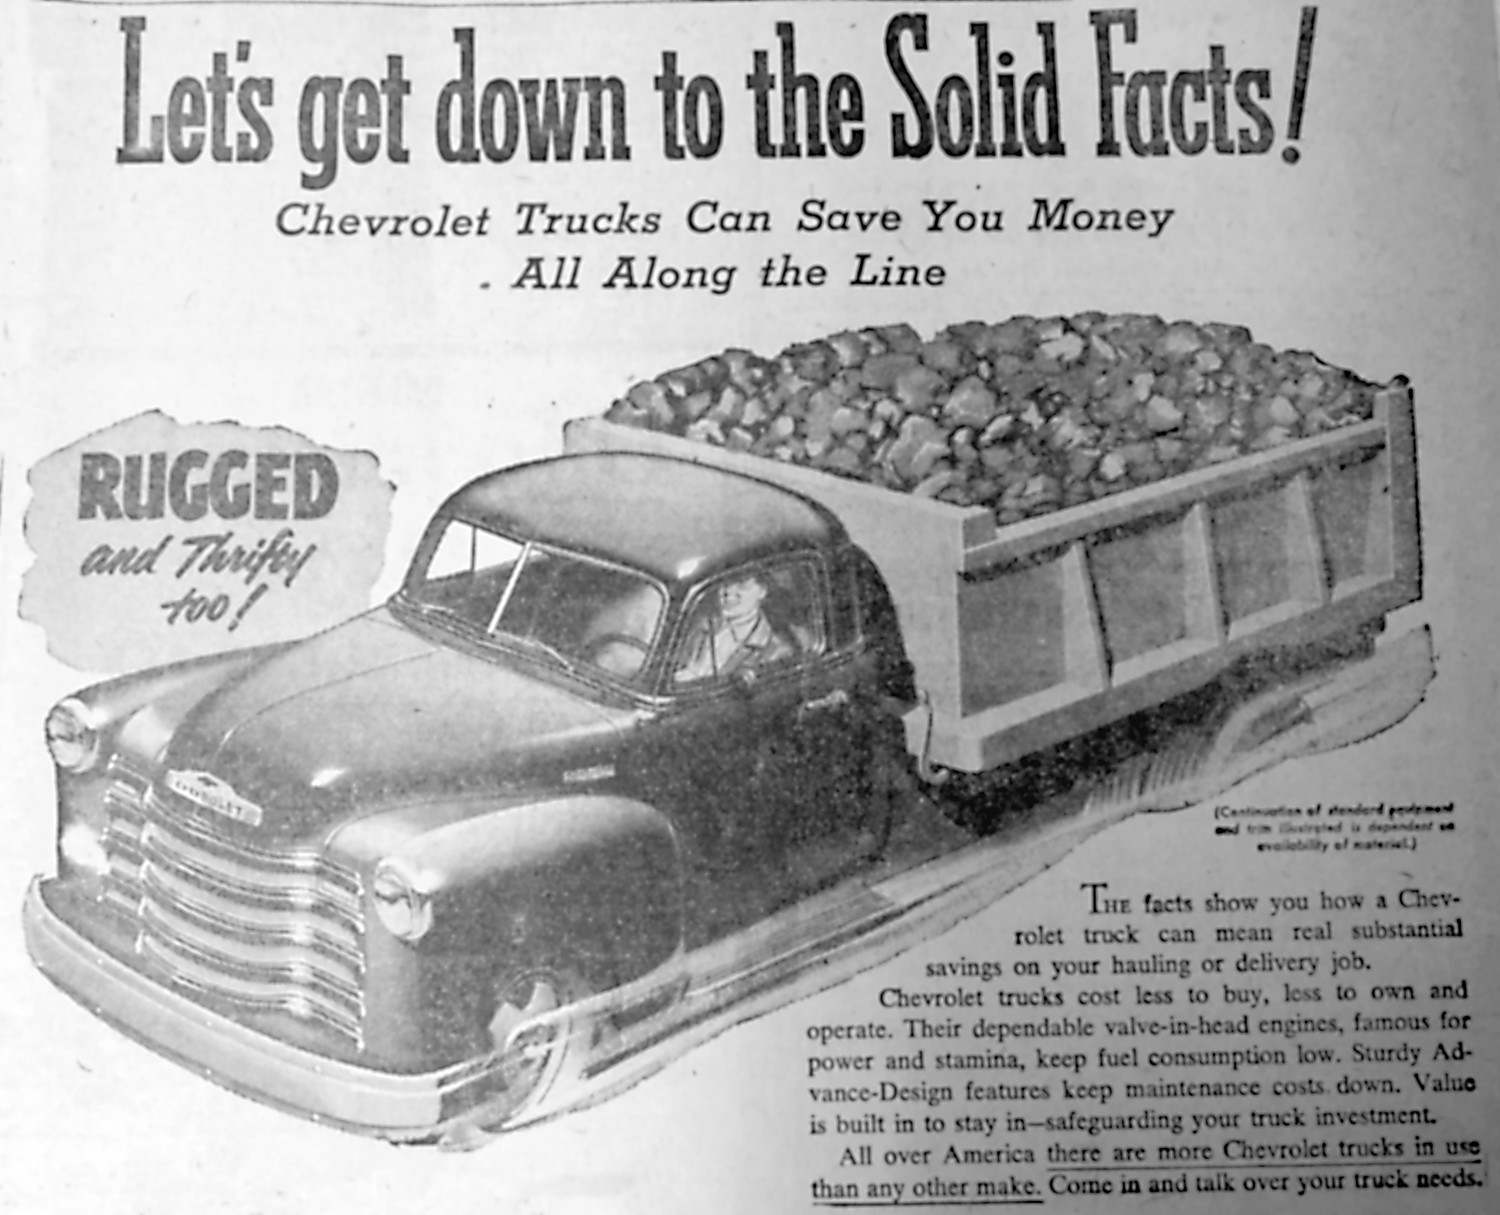 Editor's note: If you are a regular reader of From The Vault, you know that the older the edition of the Press & Journal we feature, the fewer photos appear. This illustration is from a Grove Chevrolet ad for a truck. Ads were one of the few places to find photos or illustrations during this time. Few appeared with news stories. Grove Chevrolet was located at 452 E. Main St., Middletown. It just recently closed.